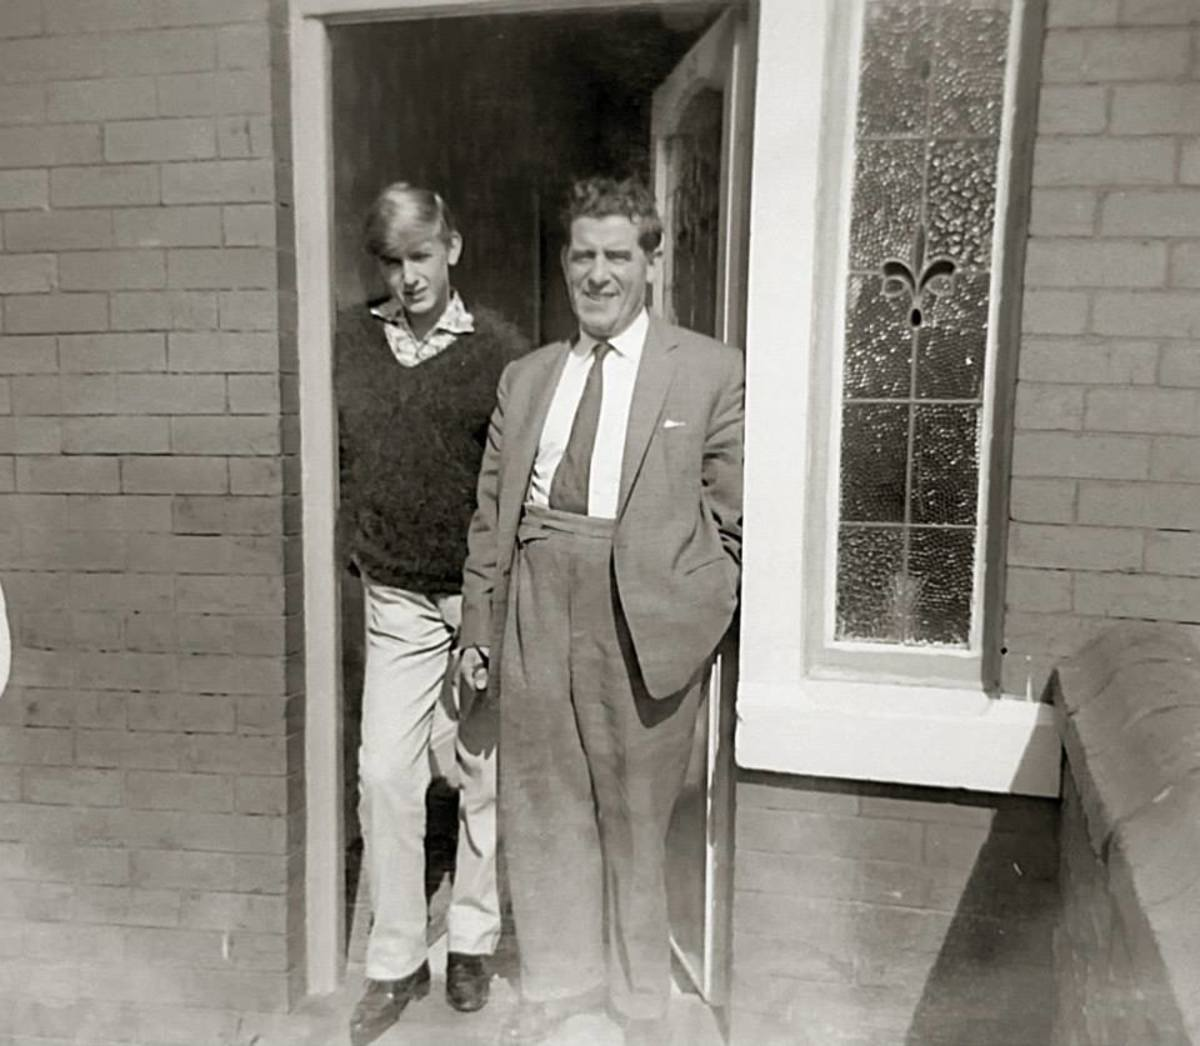 Grandad with my brother Eric at the house where we grew up. Grandad is dressed as I remember him, always in a suit and tie and never 'casual'.